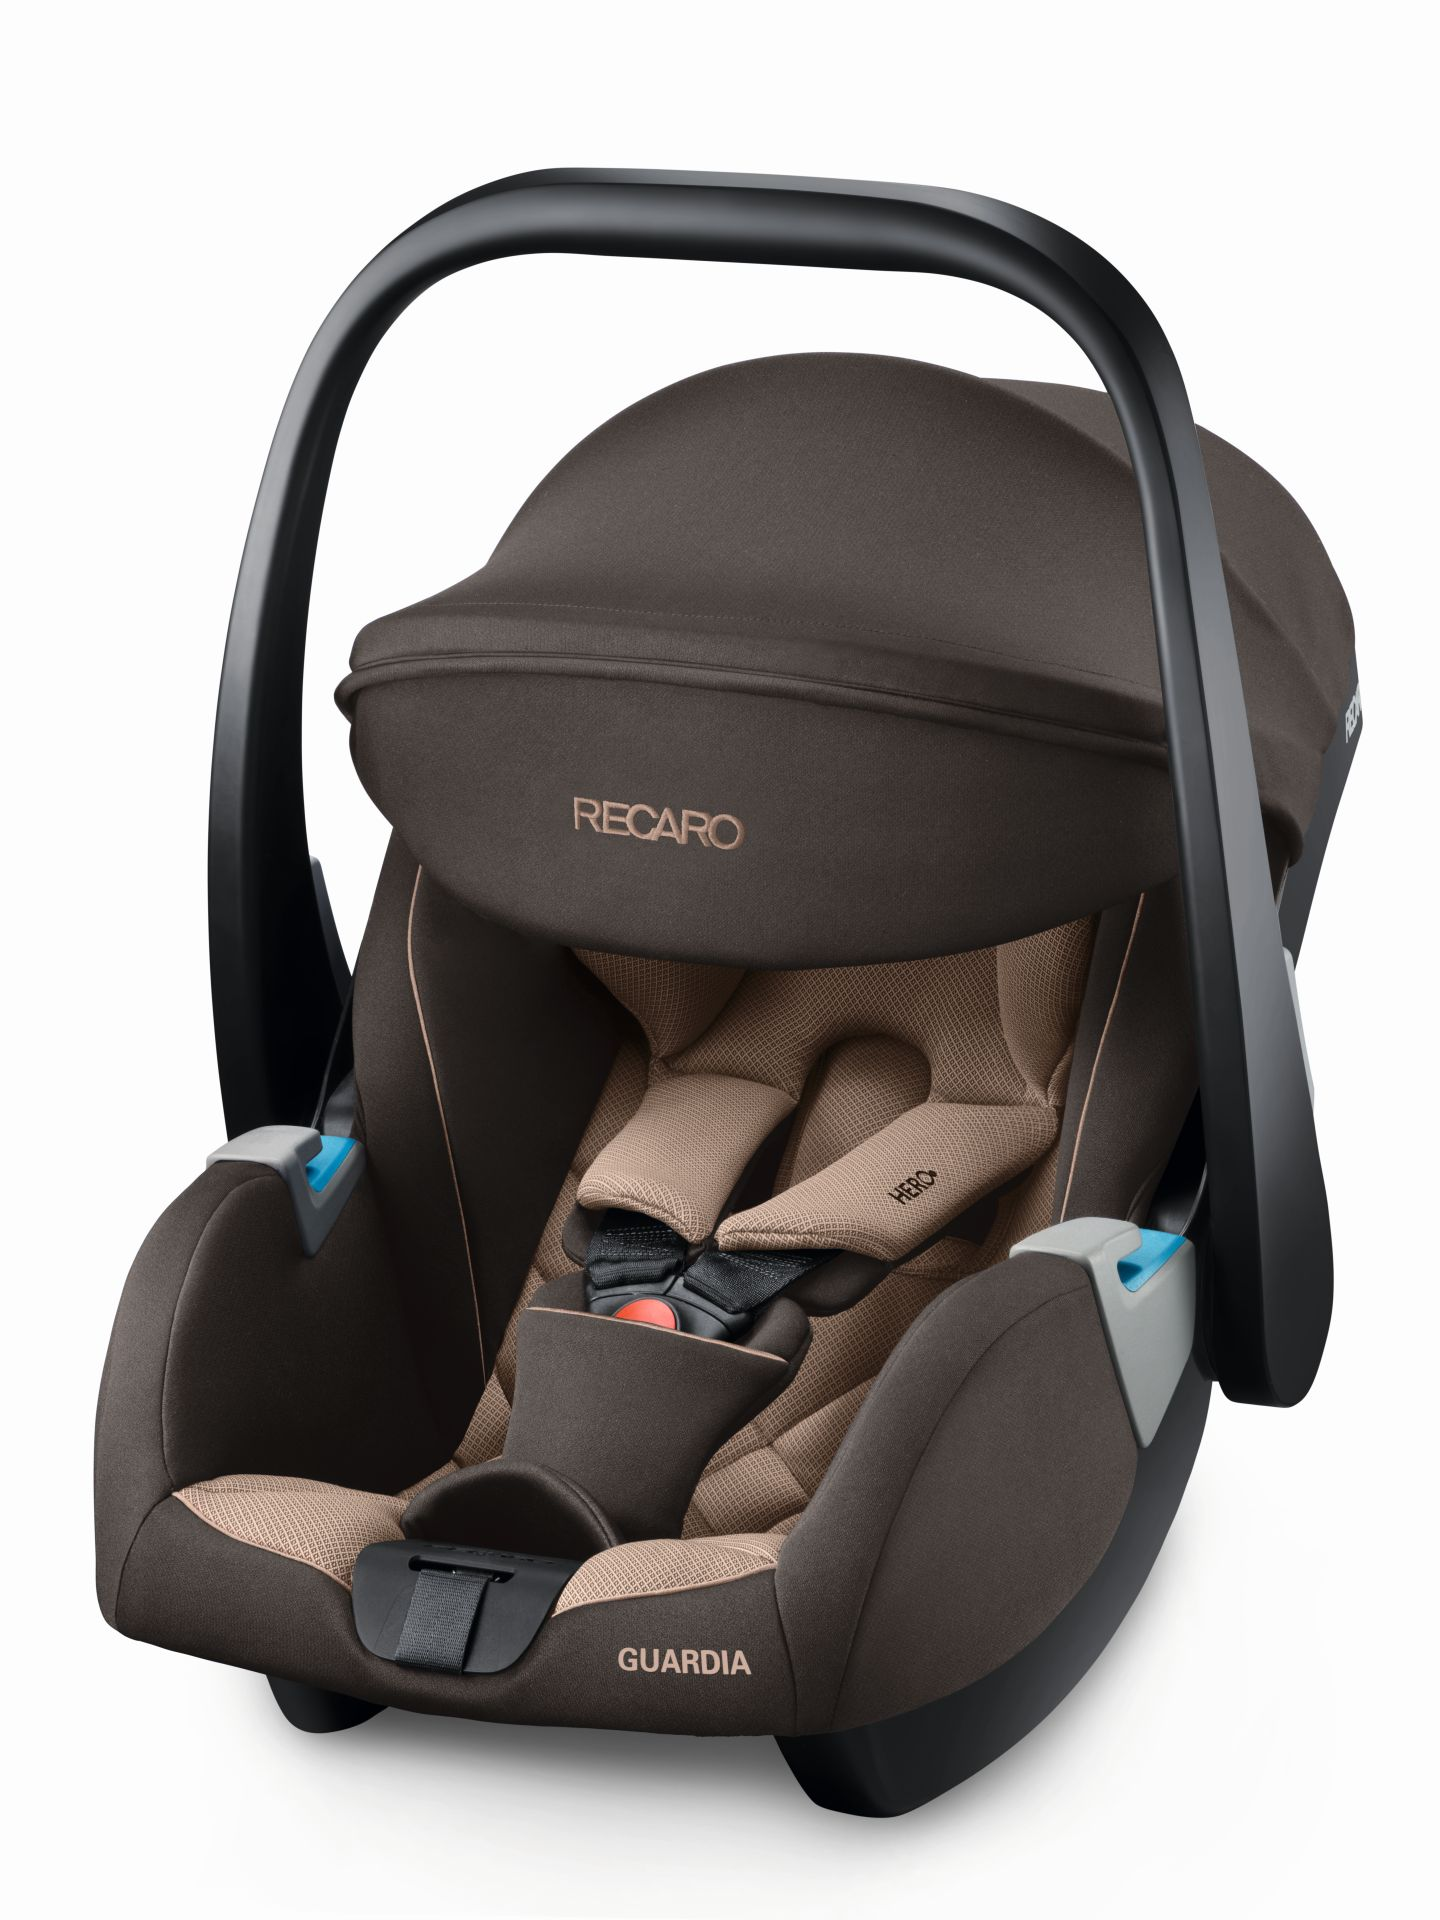 Recaro Infant Car Seat Guardia Including SmartClick Base Dakar Sand 2018